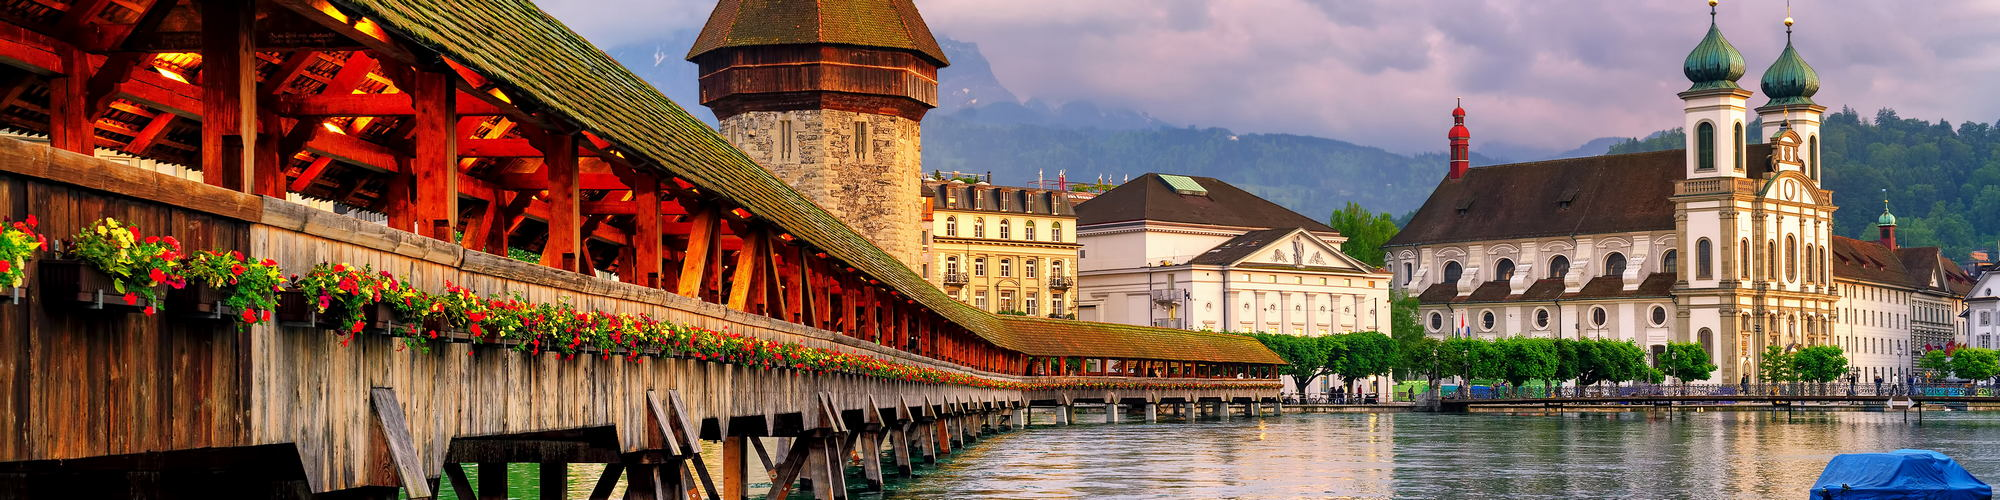 luzern_bridge_sunset_pano_sm